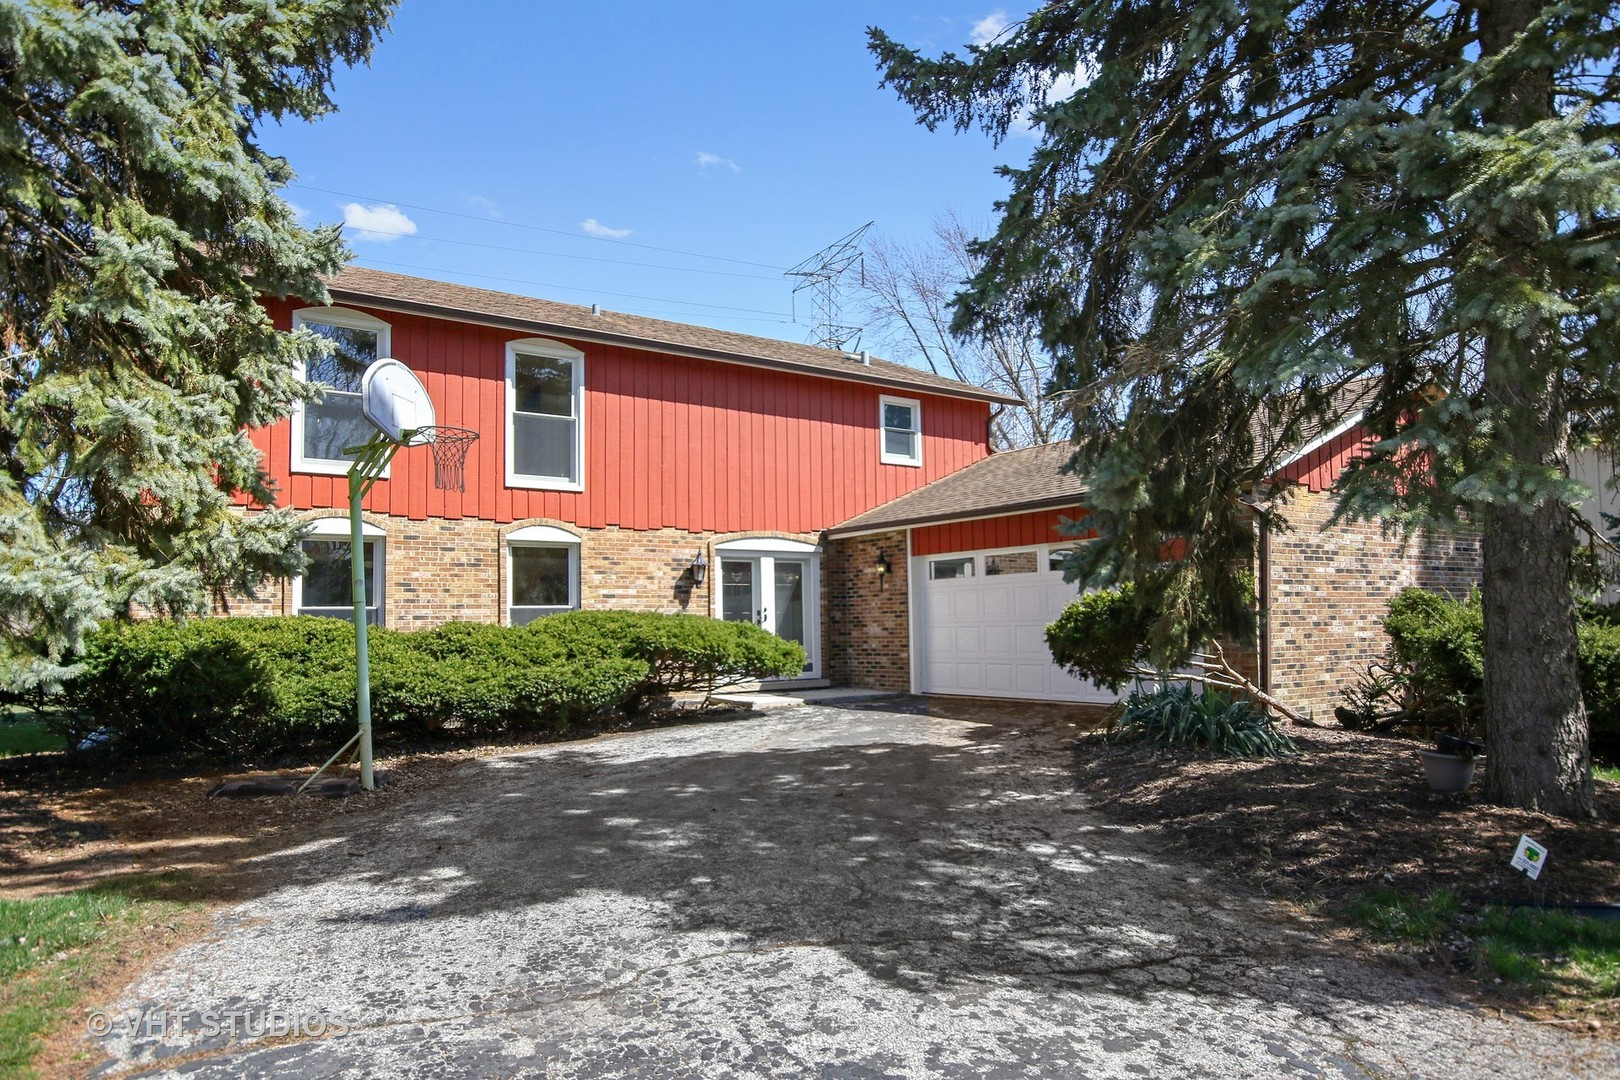 39 South Country Squire Road, Palos Heights in Cook County, IL 60463 Home for Sale